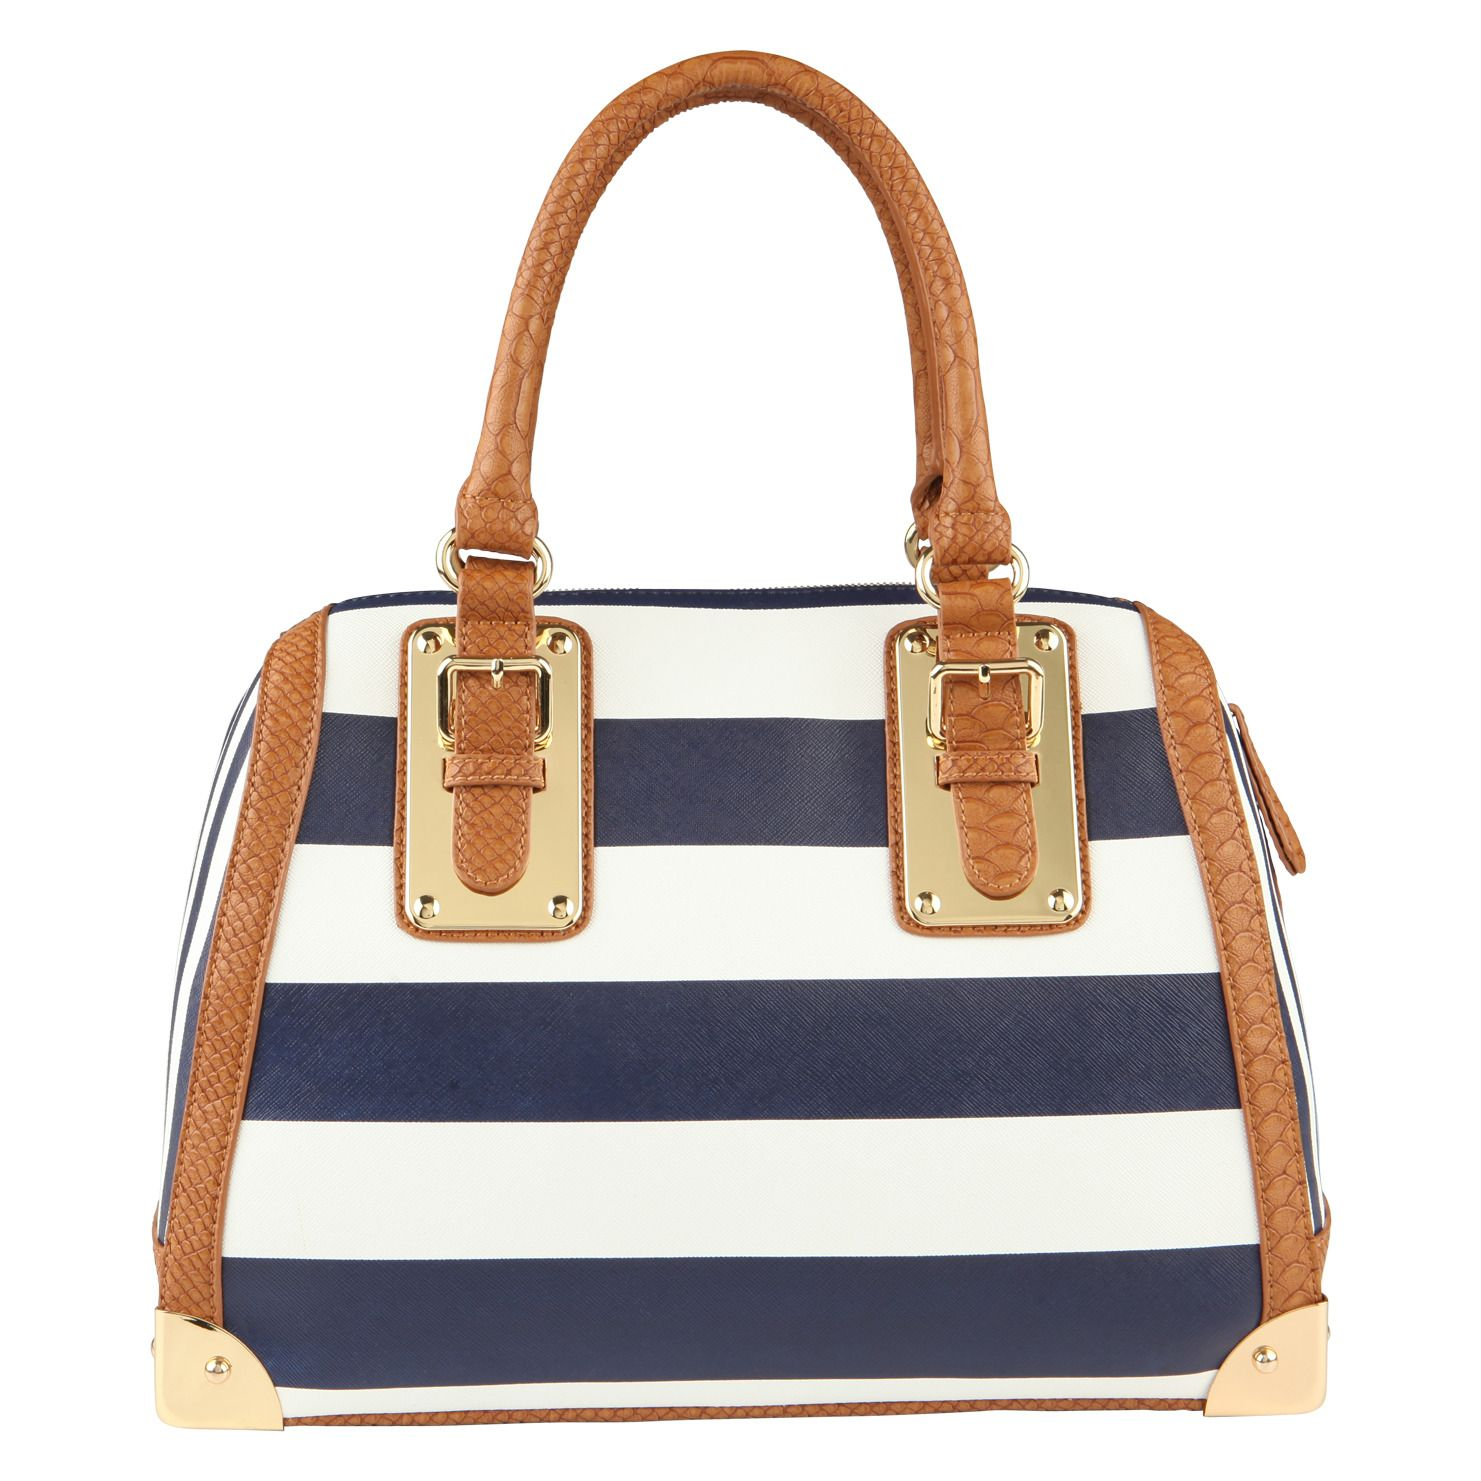 SMOLDT - handbags's satchels & handheld bags for sale at ALDO ...